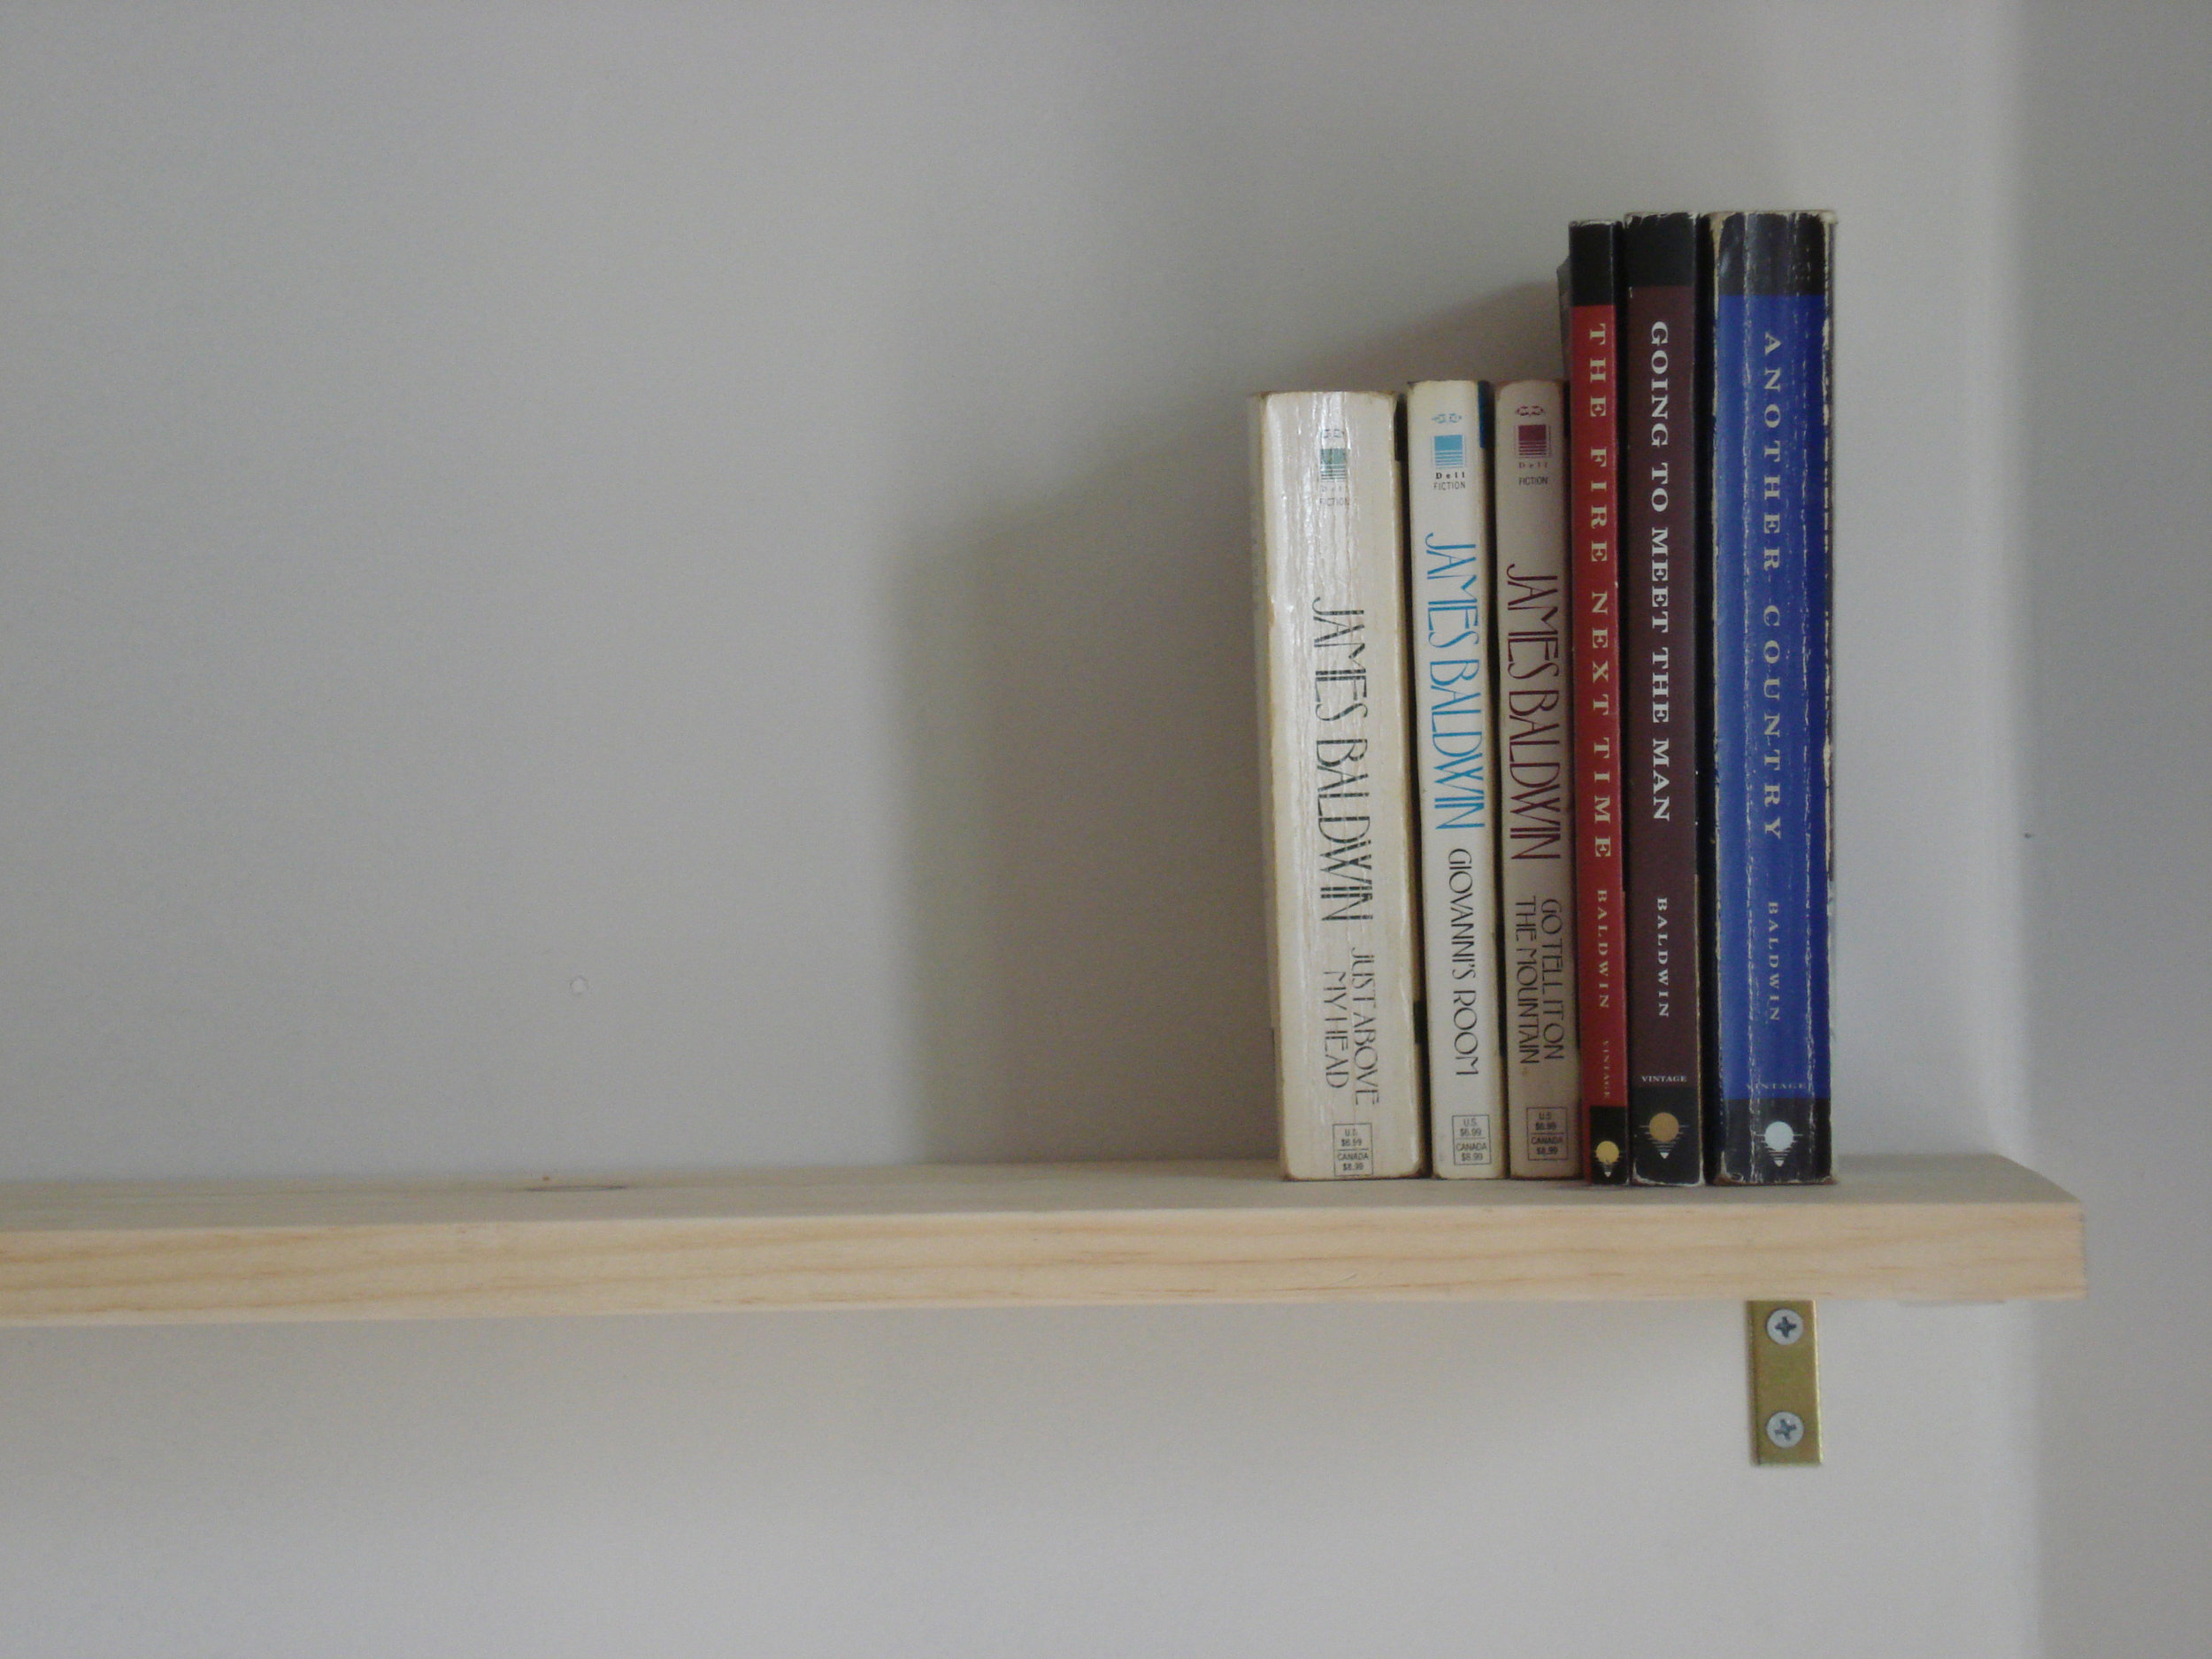 Leor Grady at The Center for Book Arts, New York